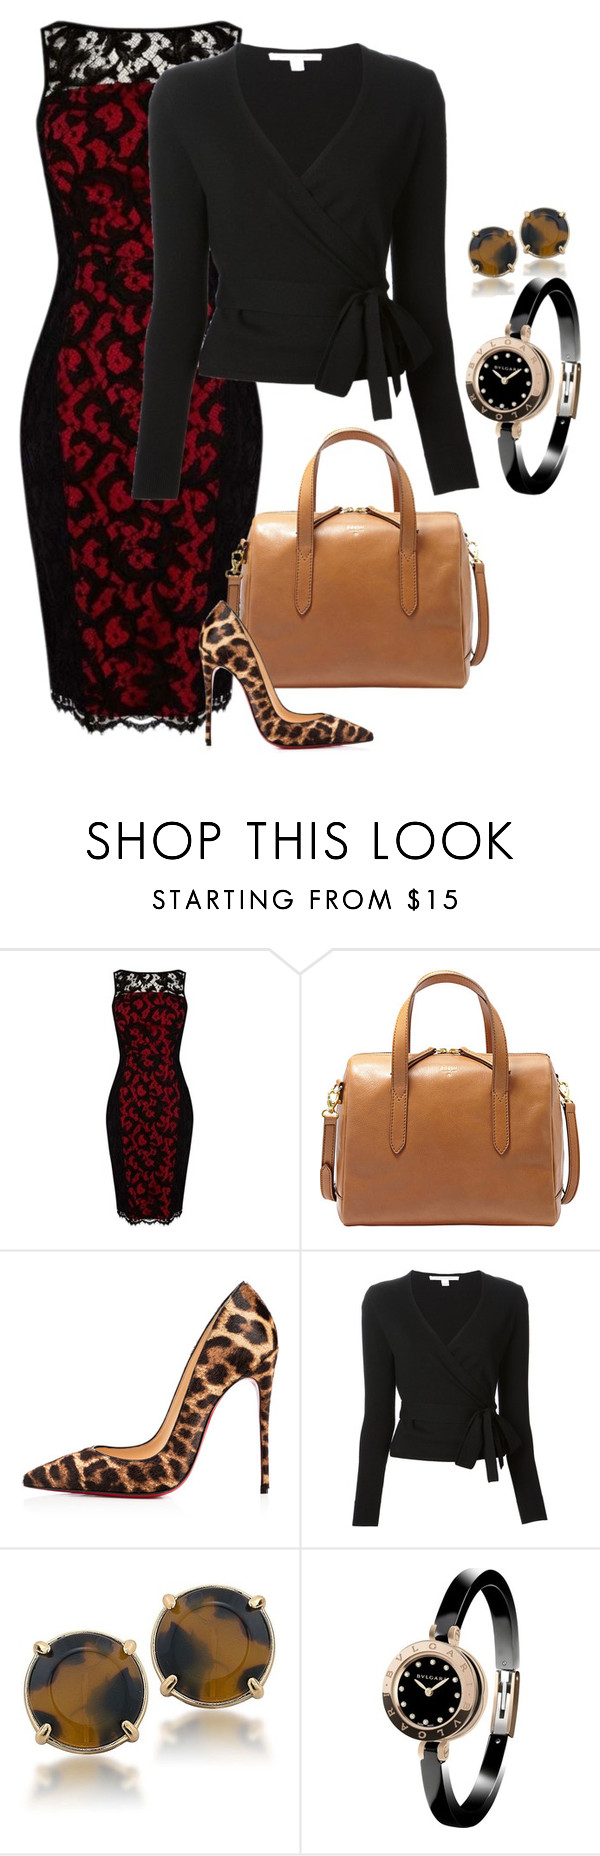 """black and red lace"" by shoesclothesbagsaddict ❤ liked on Polyvore featuring Karen Millen, FOSSIL, Christian Louboutin, Diane Von Furstenberg, Carolee and Bulgari"